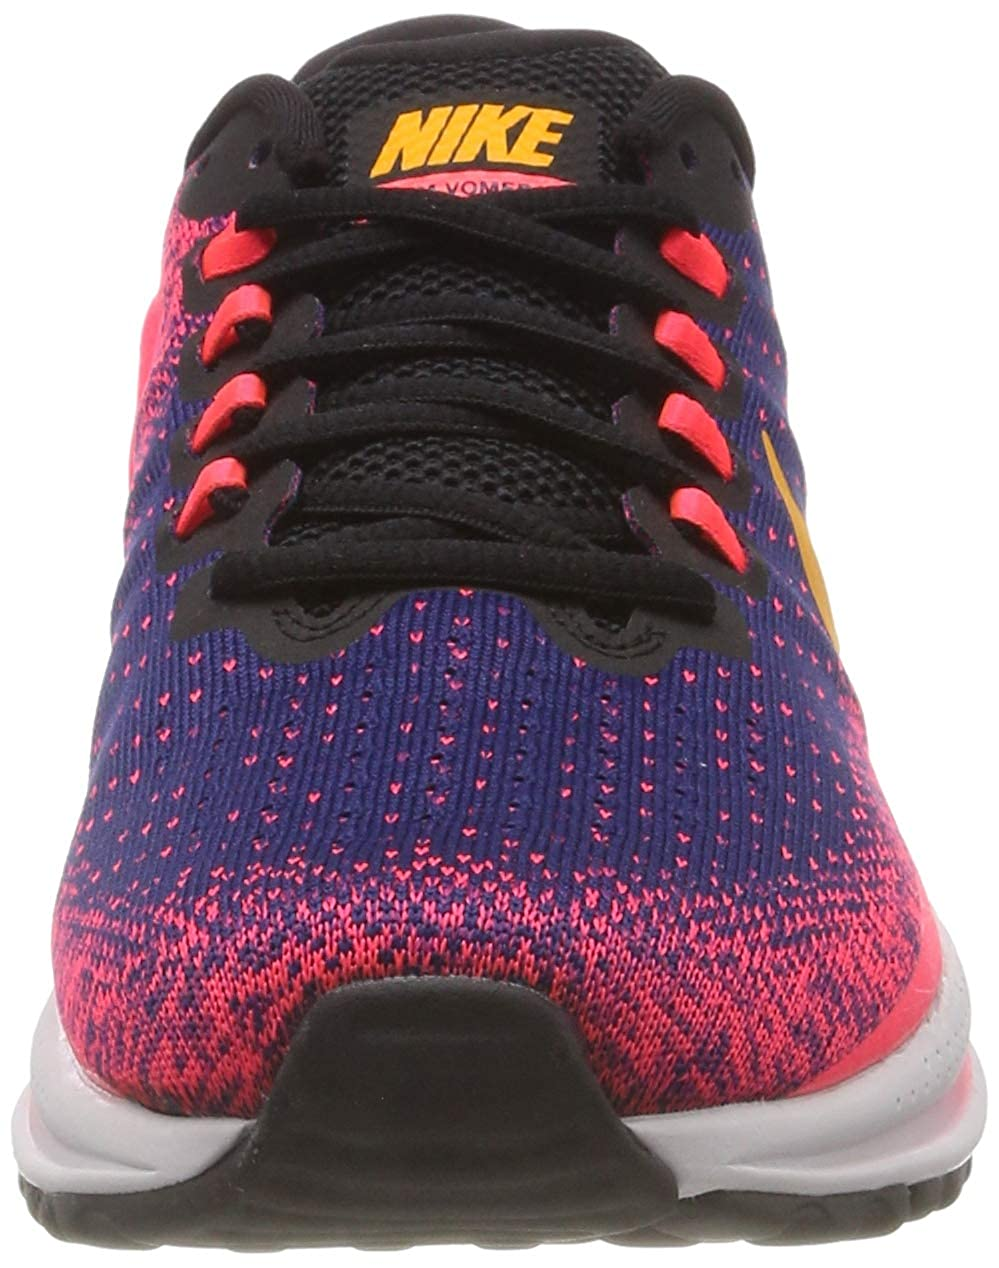 buy online a4459 6a523 Nike Air Zoom Vomero 13, Scarpe Running Uomo  Amazon.it  Scarpe e borse